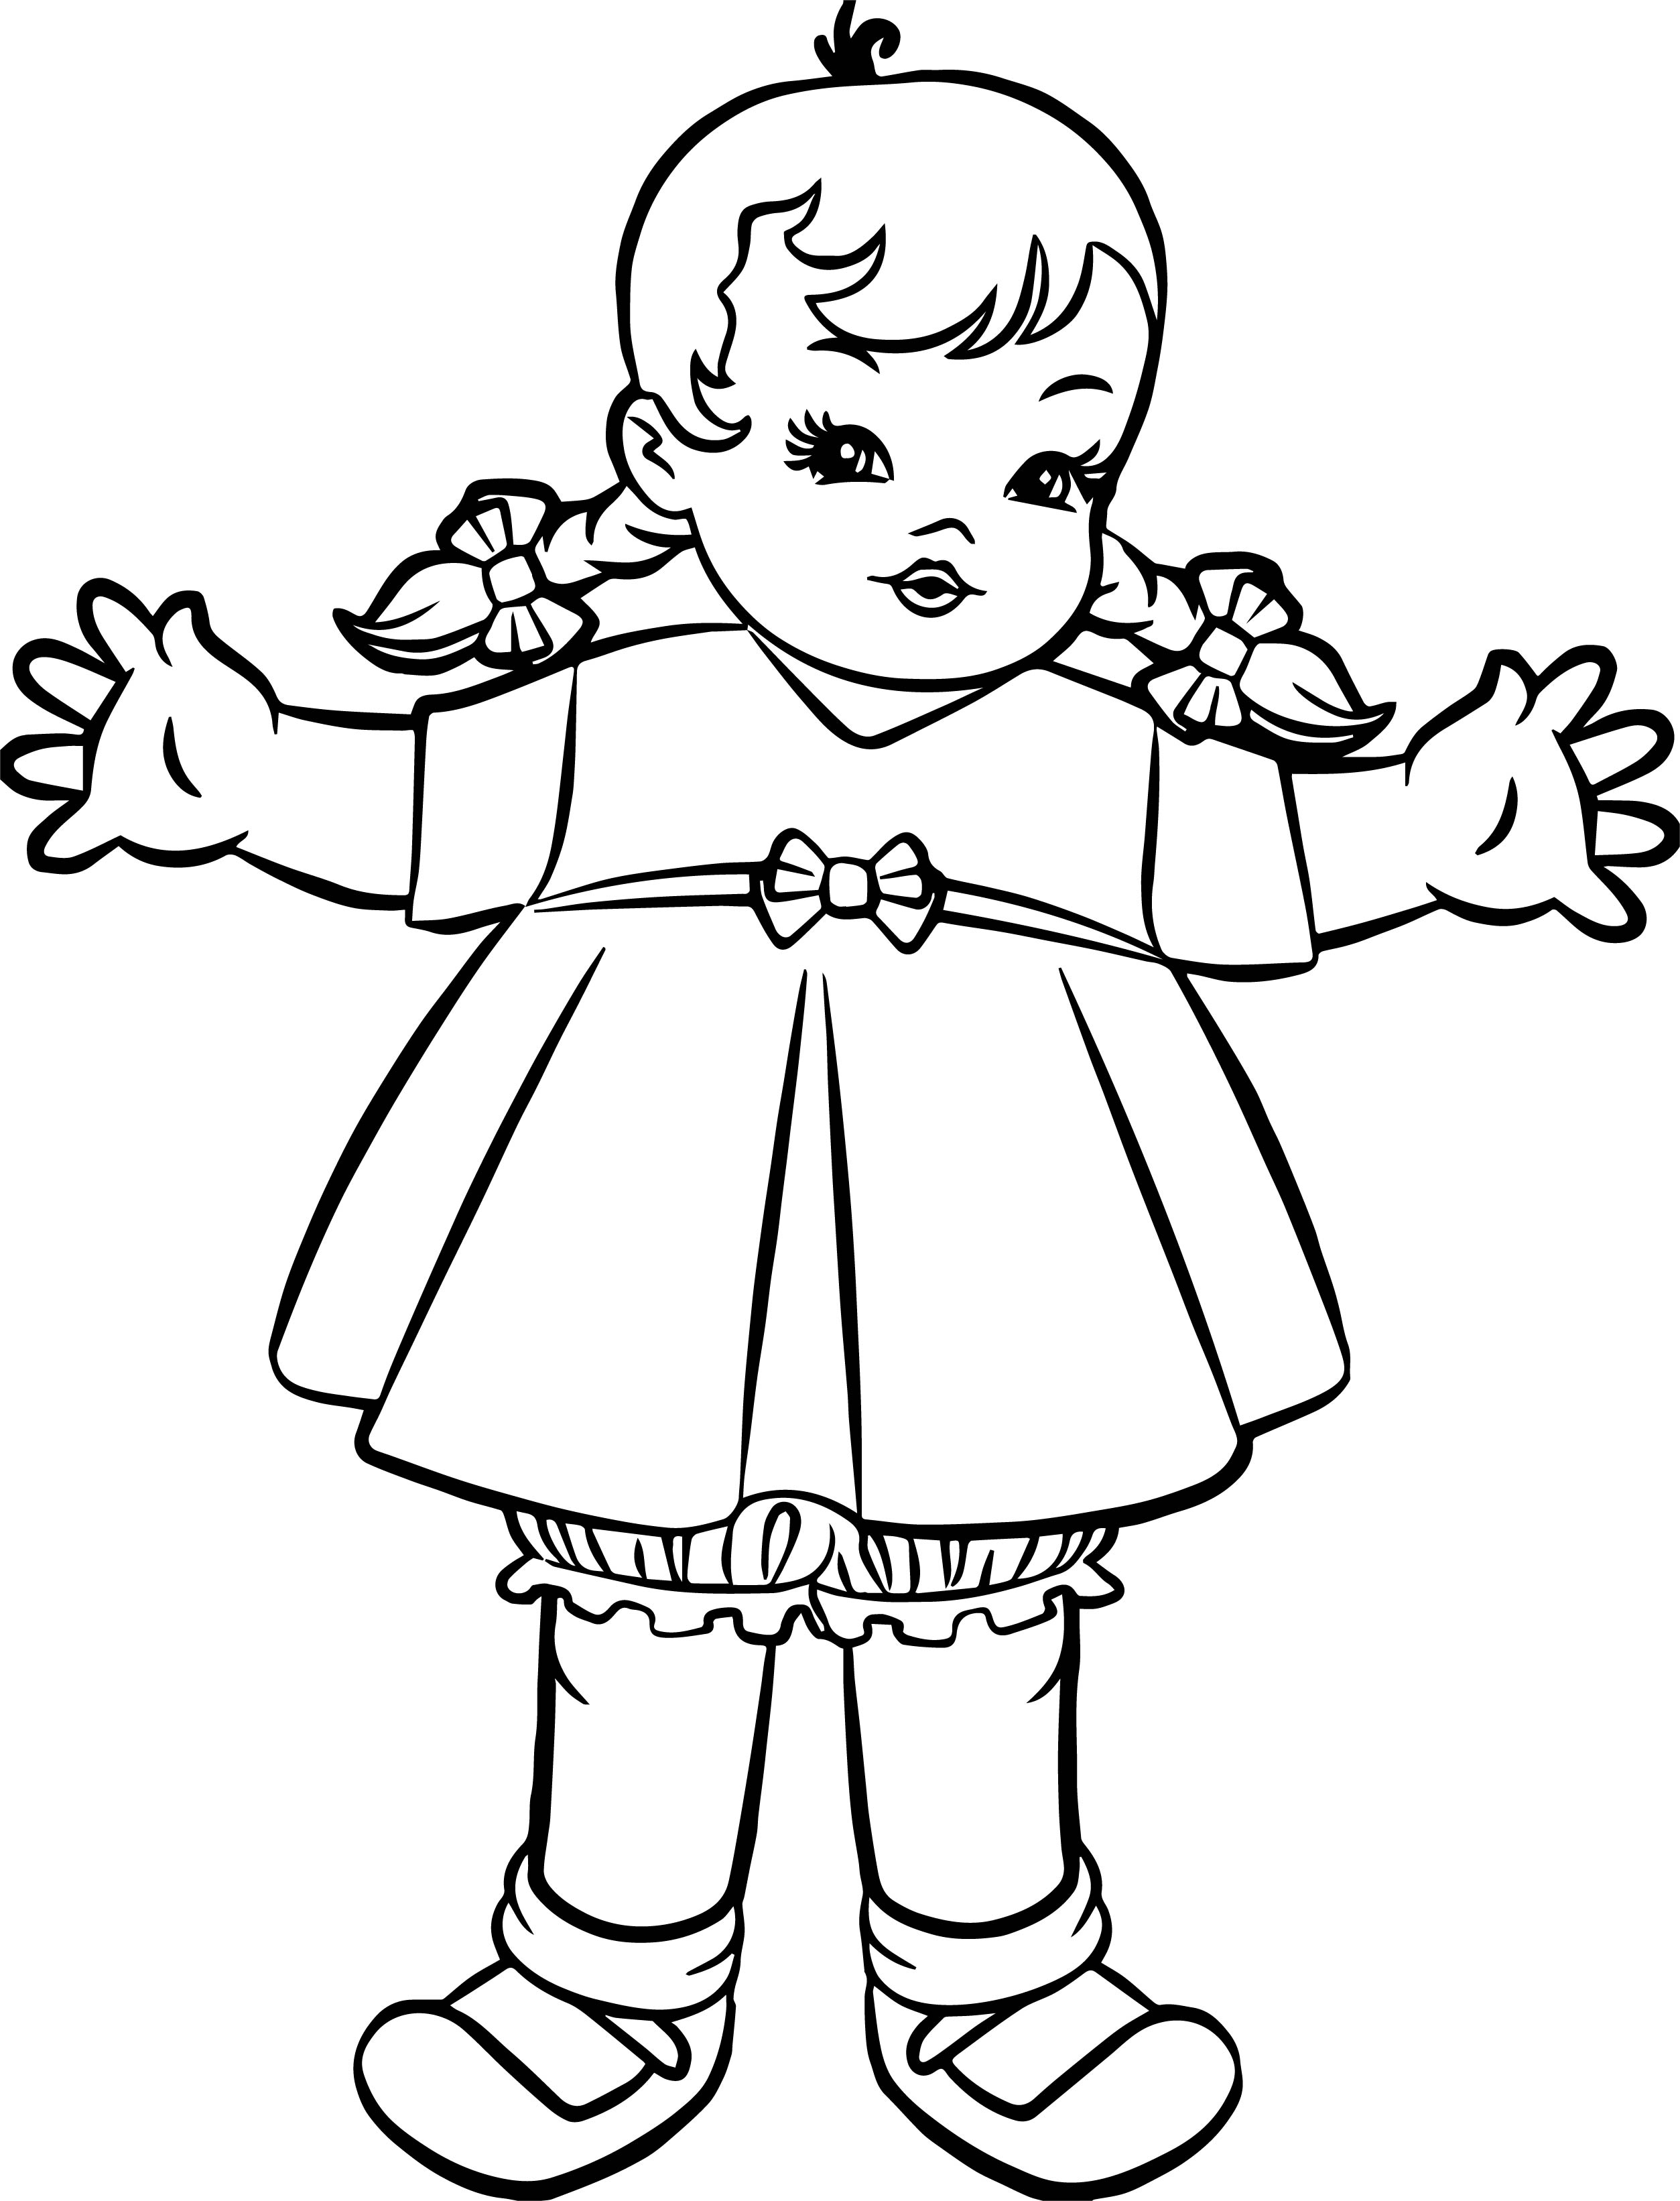 Barbie Small Kid Girl Coloring Page